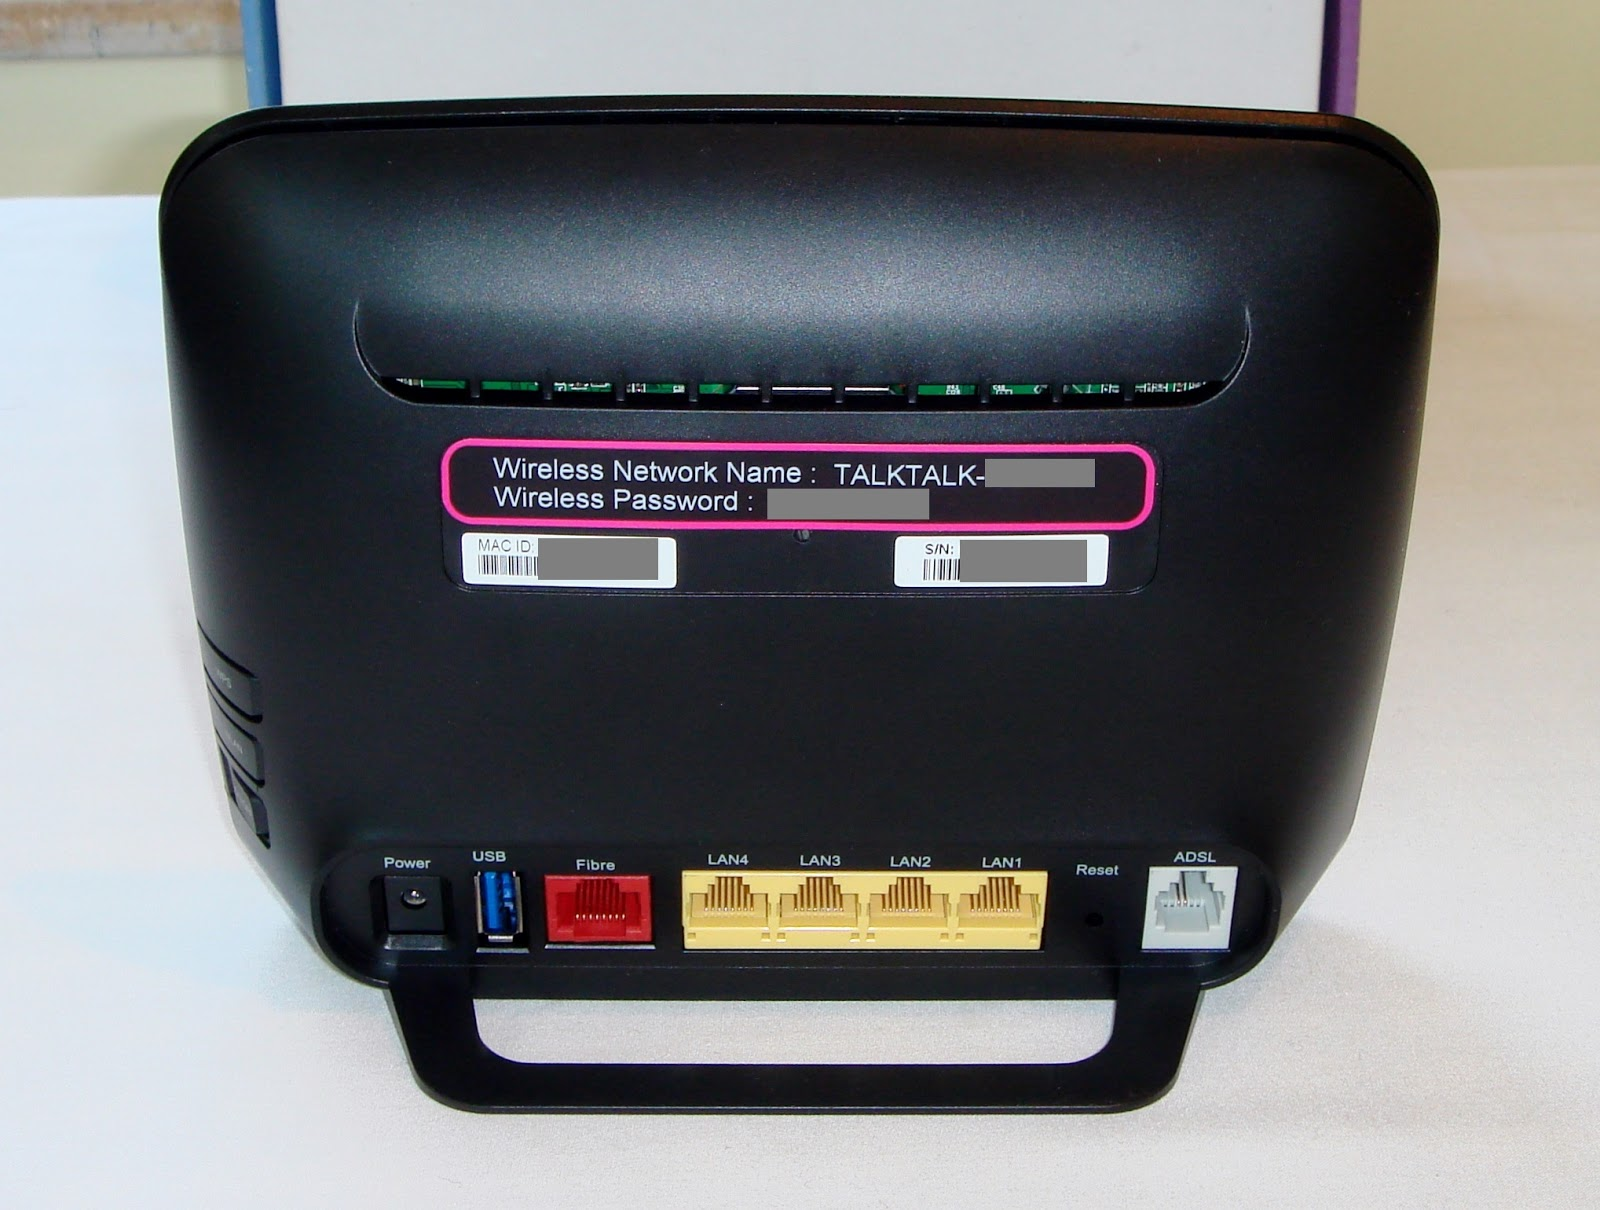 Talktalk D-Link Dsl-3780 Info And Use With Other Isps-6417